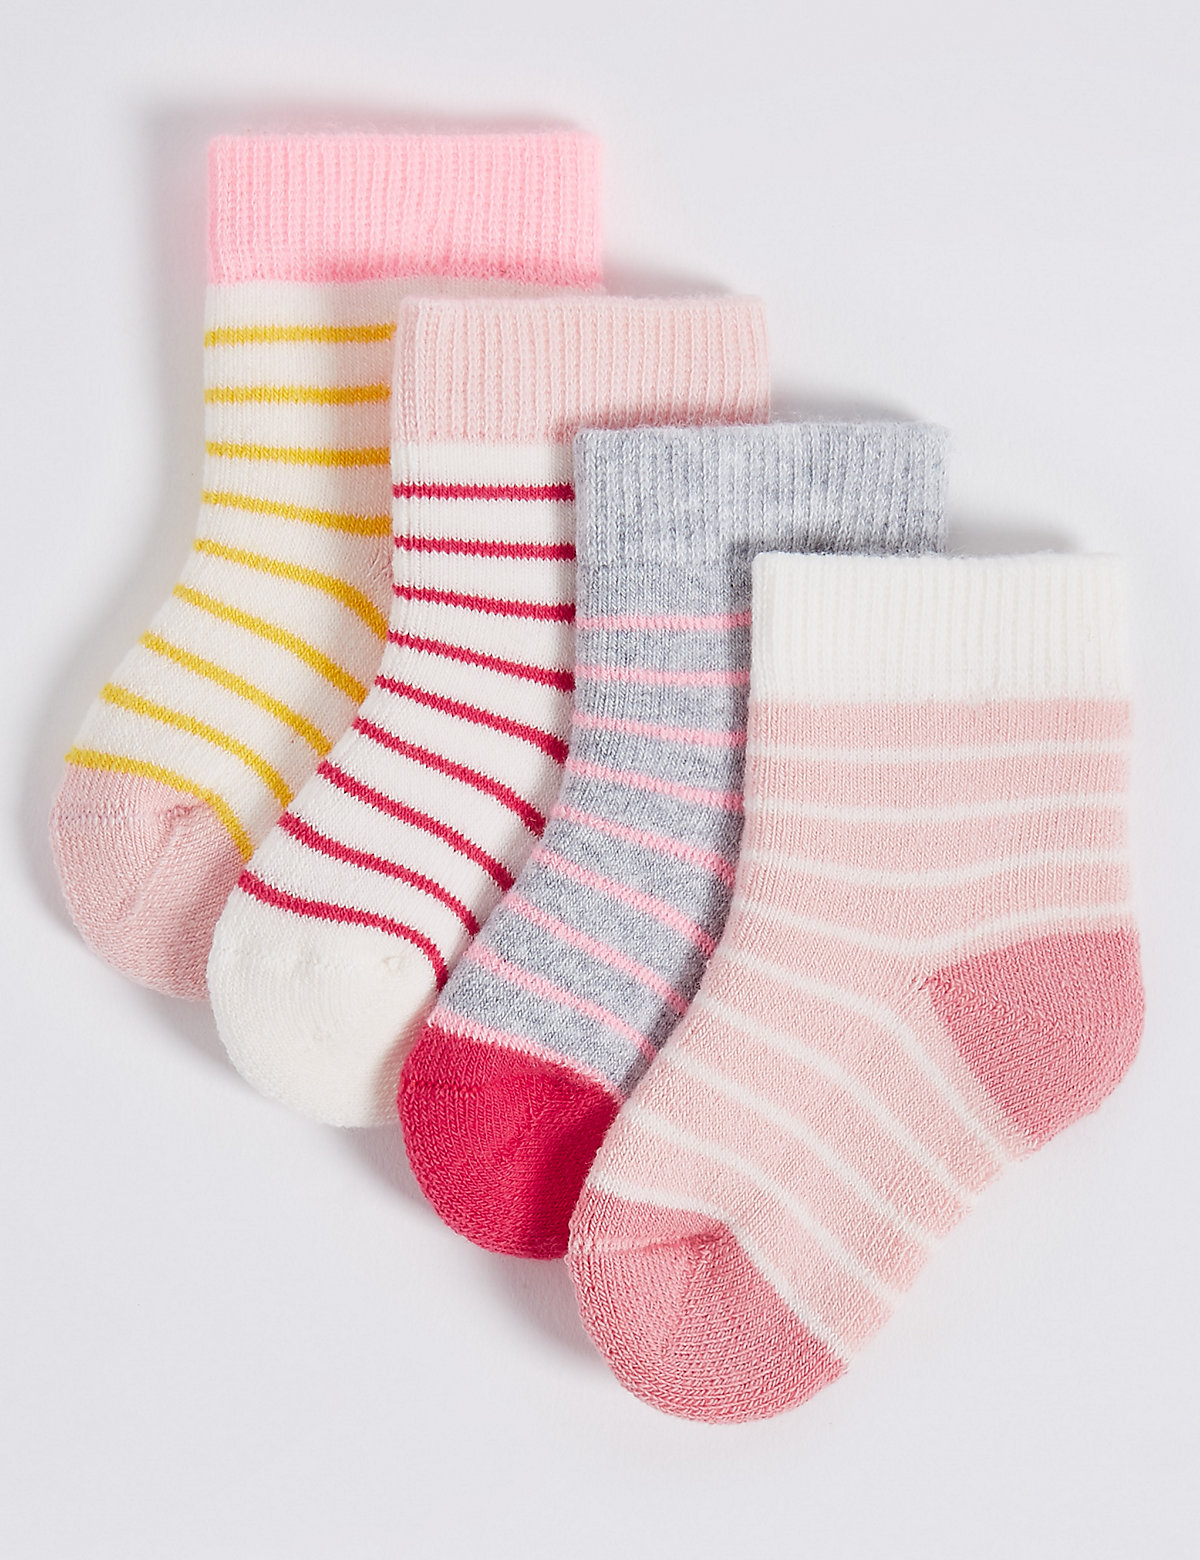 4 Pairs of Cotton Rich StaySoft Socks (0-24 Months)